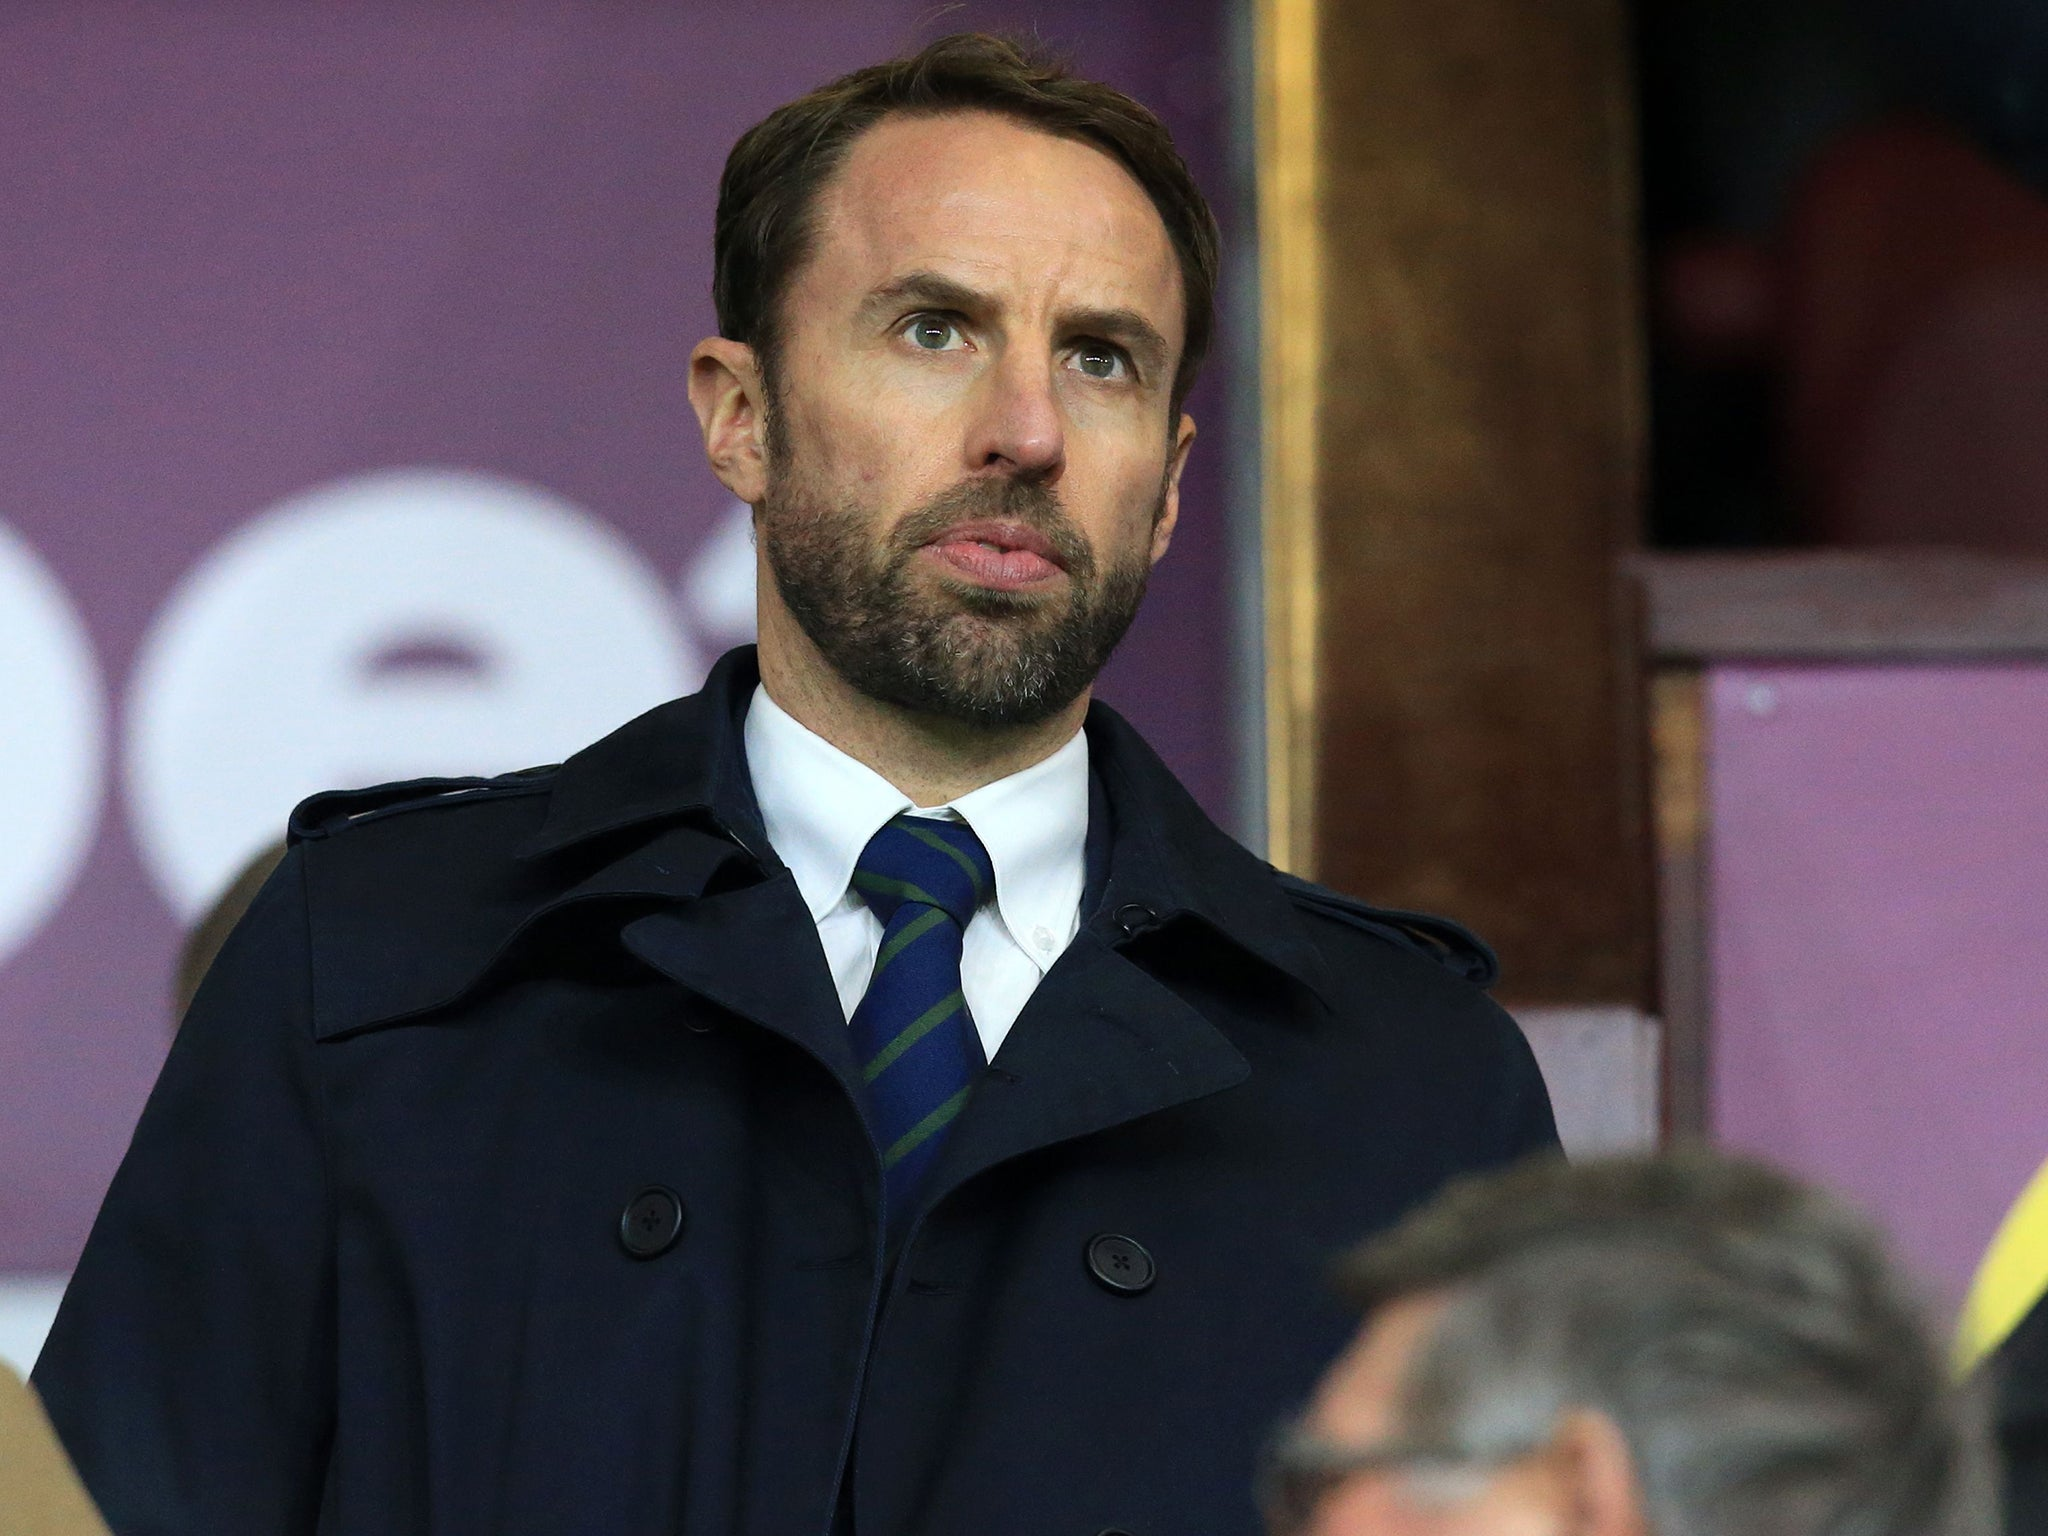 Gareth Southgate wants England to emulate Pele and Gordon Banks and make history at the 2018 World Cup